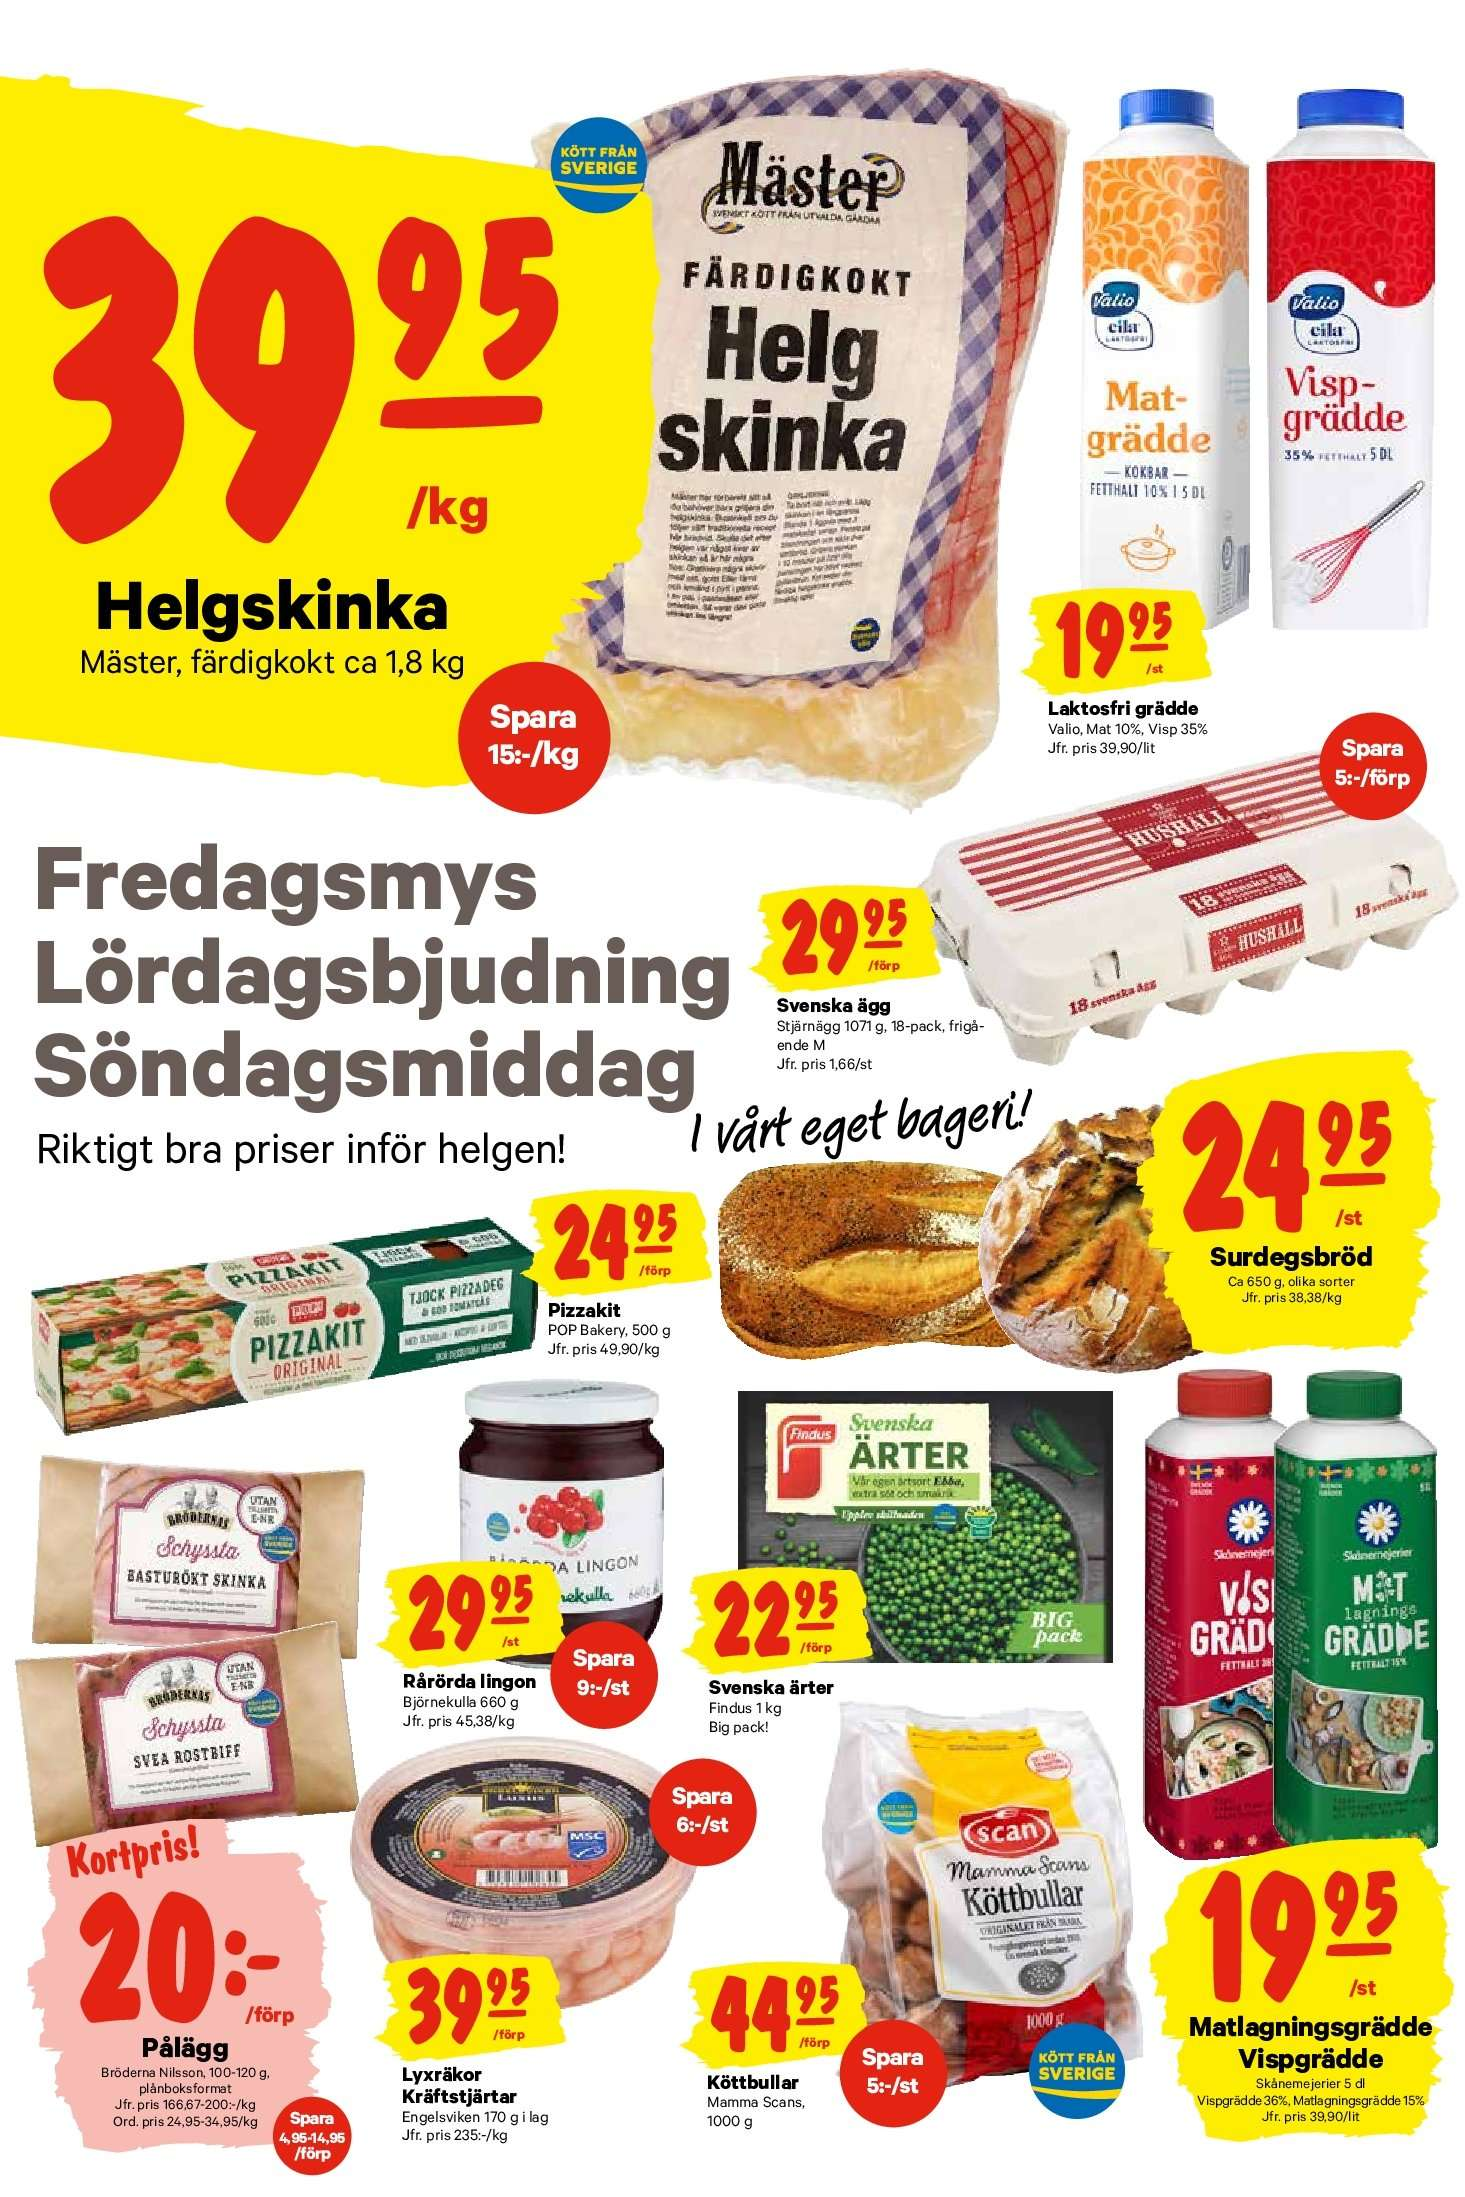 City Gross reklamblad - 22/10 2018 - 28/10 2018. Sida 6.